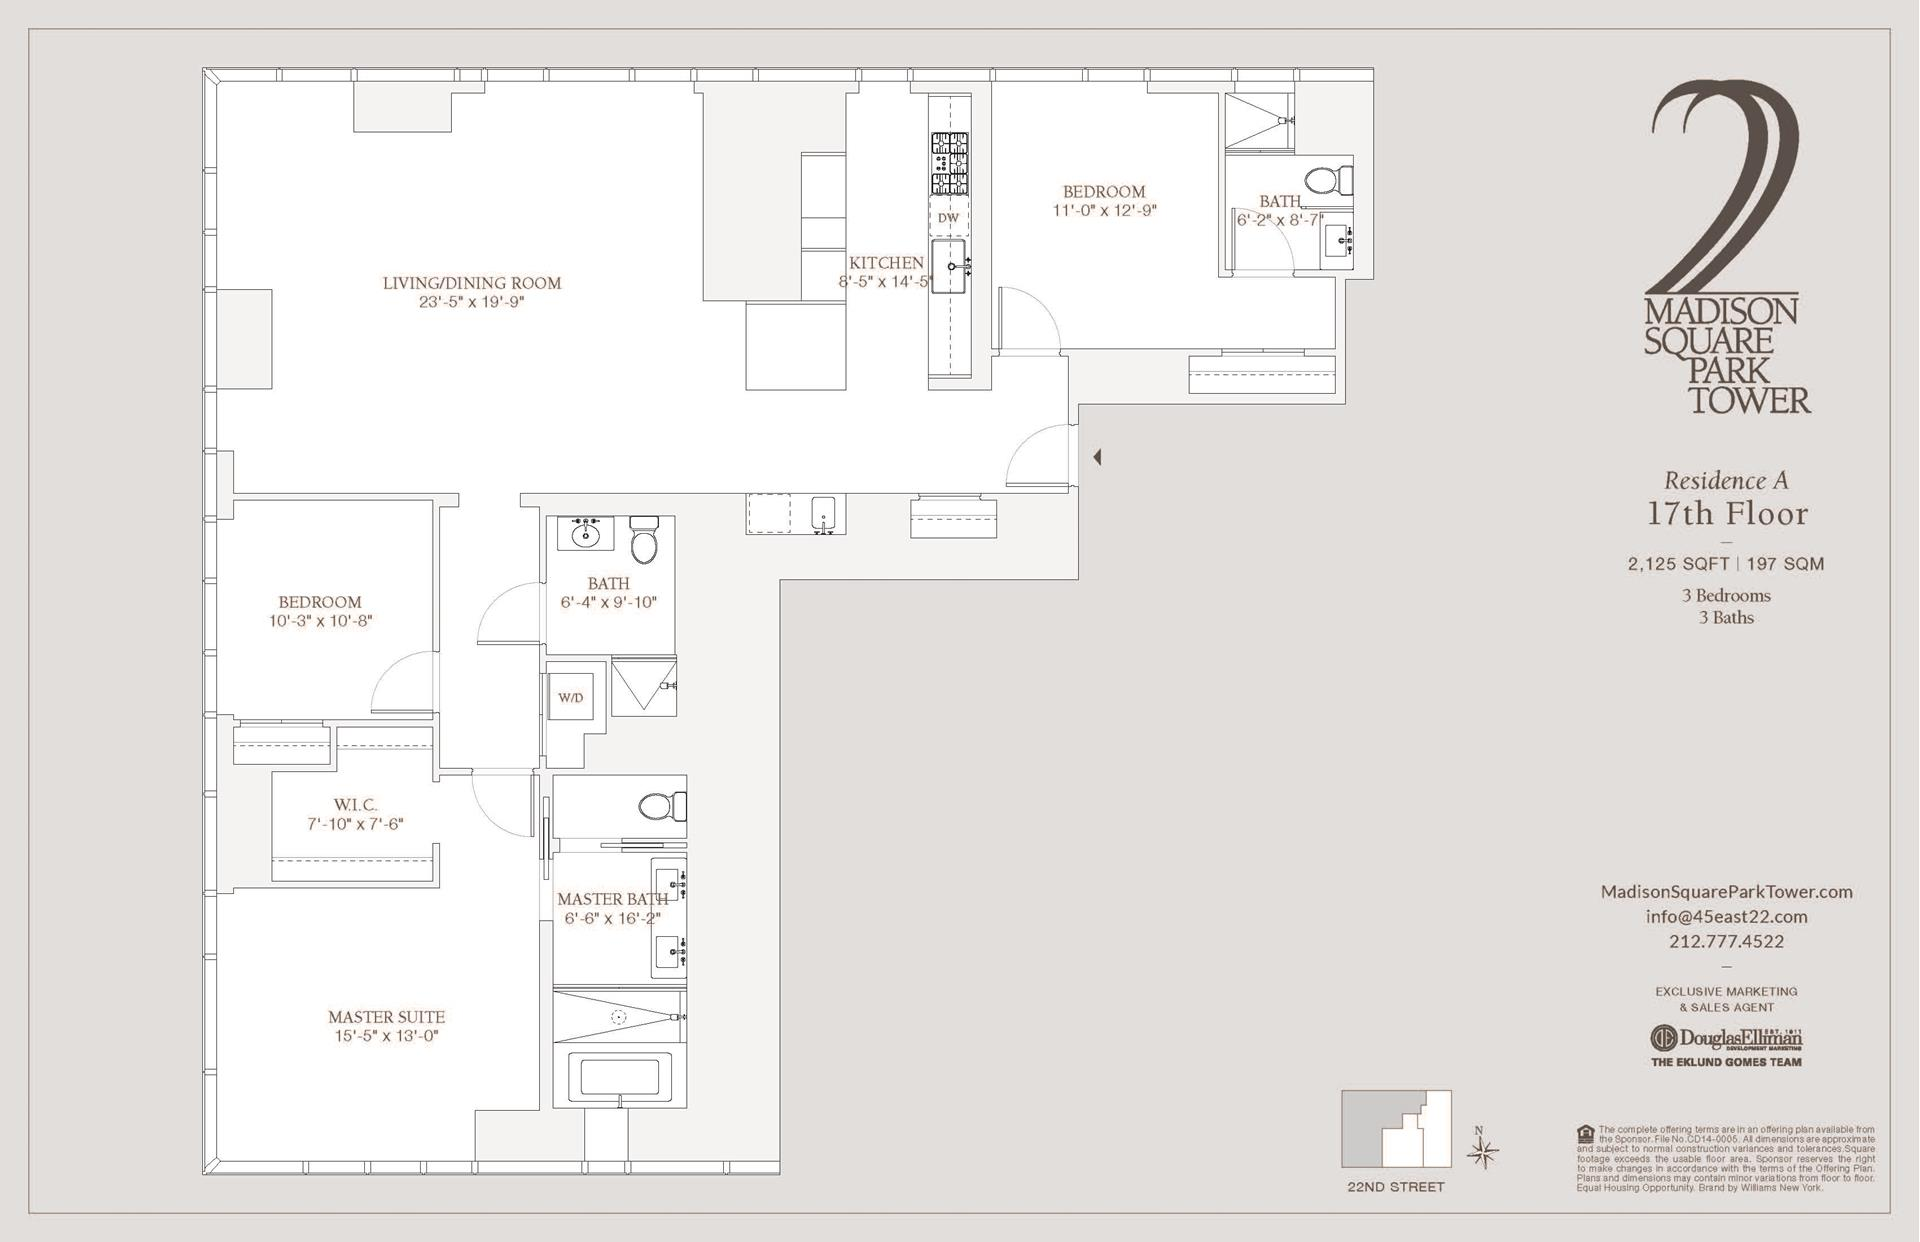 Floor plan of Madison Square Park Tower, 45 East 22nd Street, 17A - Flatiron District, New York